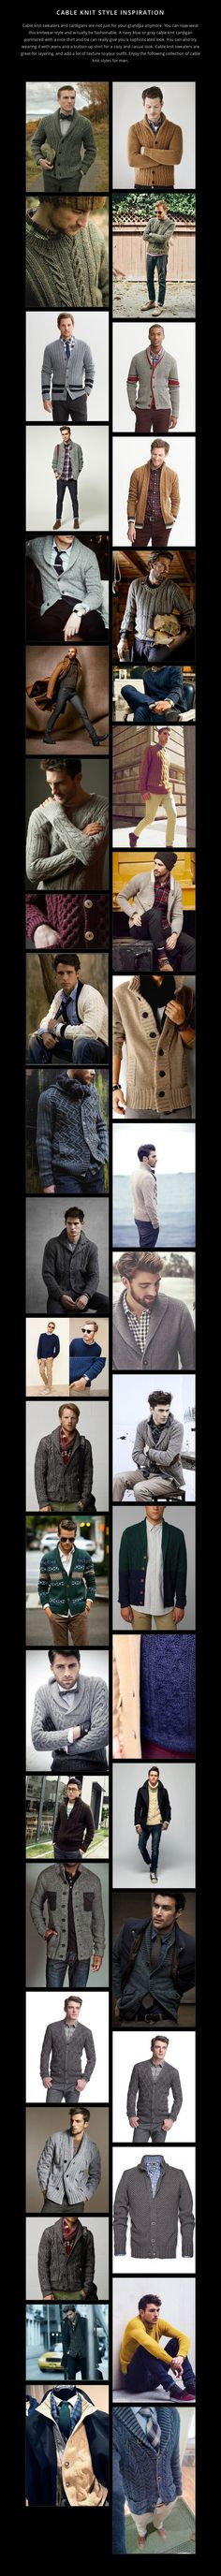 CABLE KNIT STYLE INSPIRATION